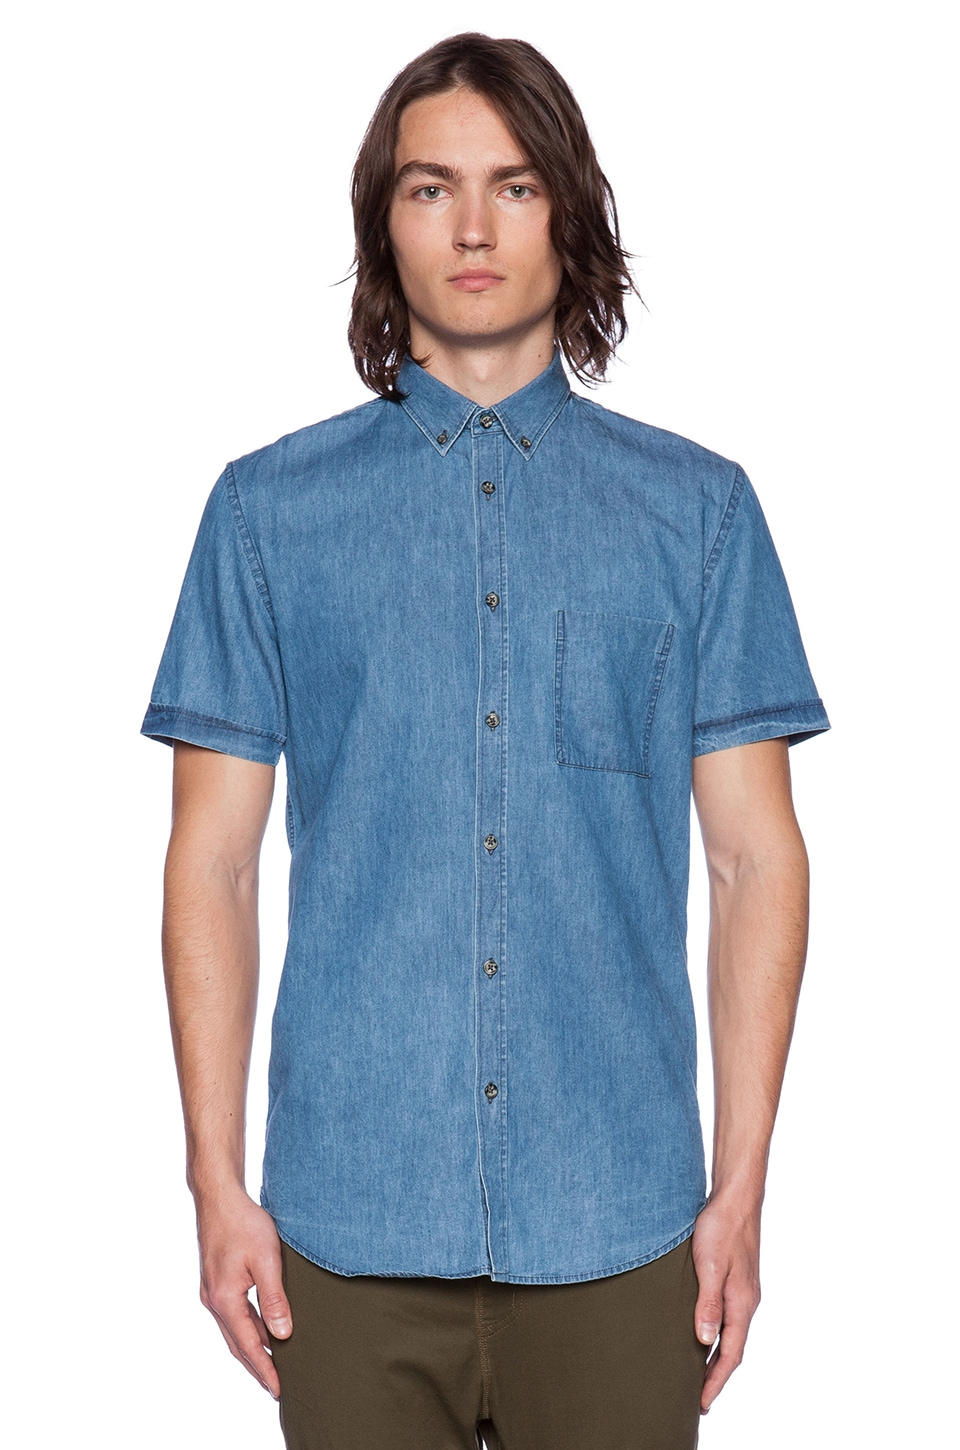 Zanerobe Seven Foot Shirt in Denim